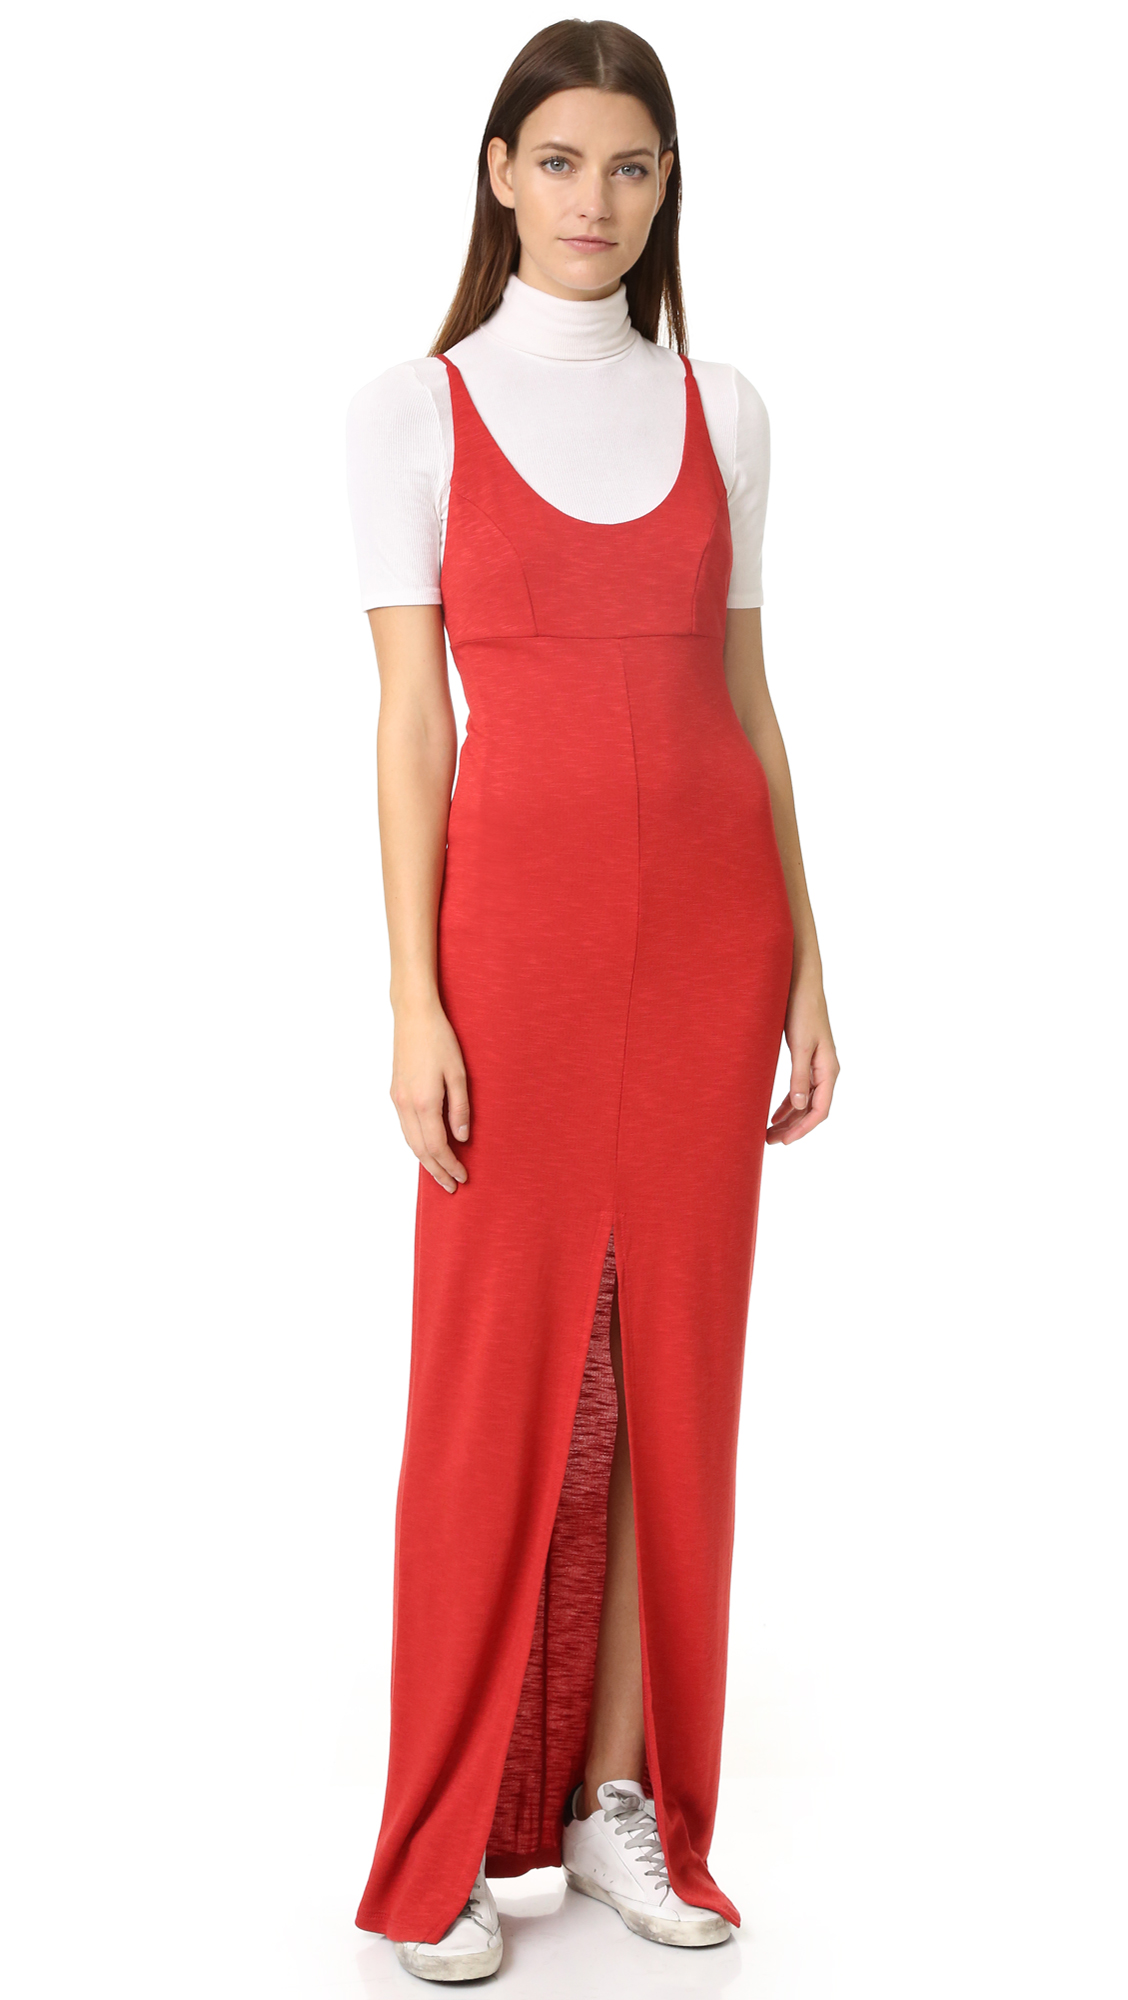 Lanston X Back Maxi Dress - Russet at Shopbop